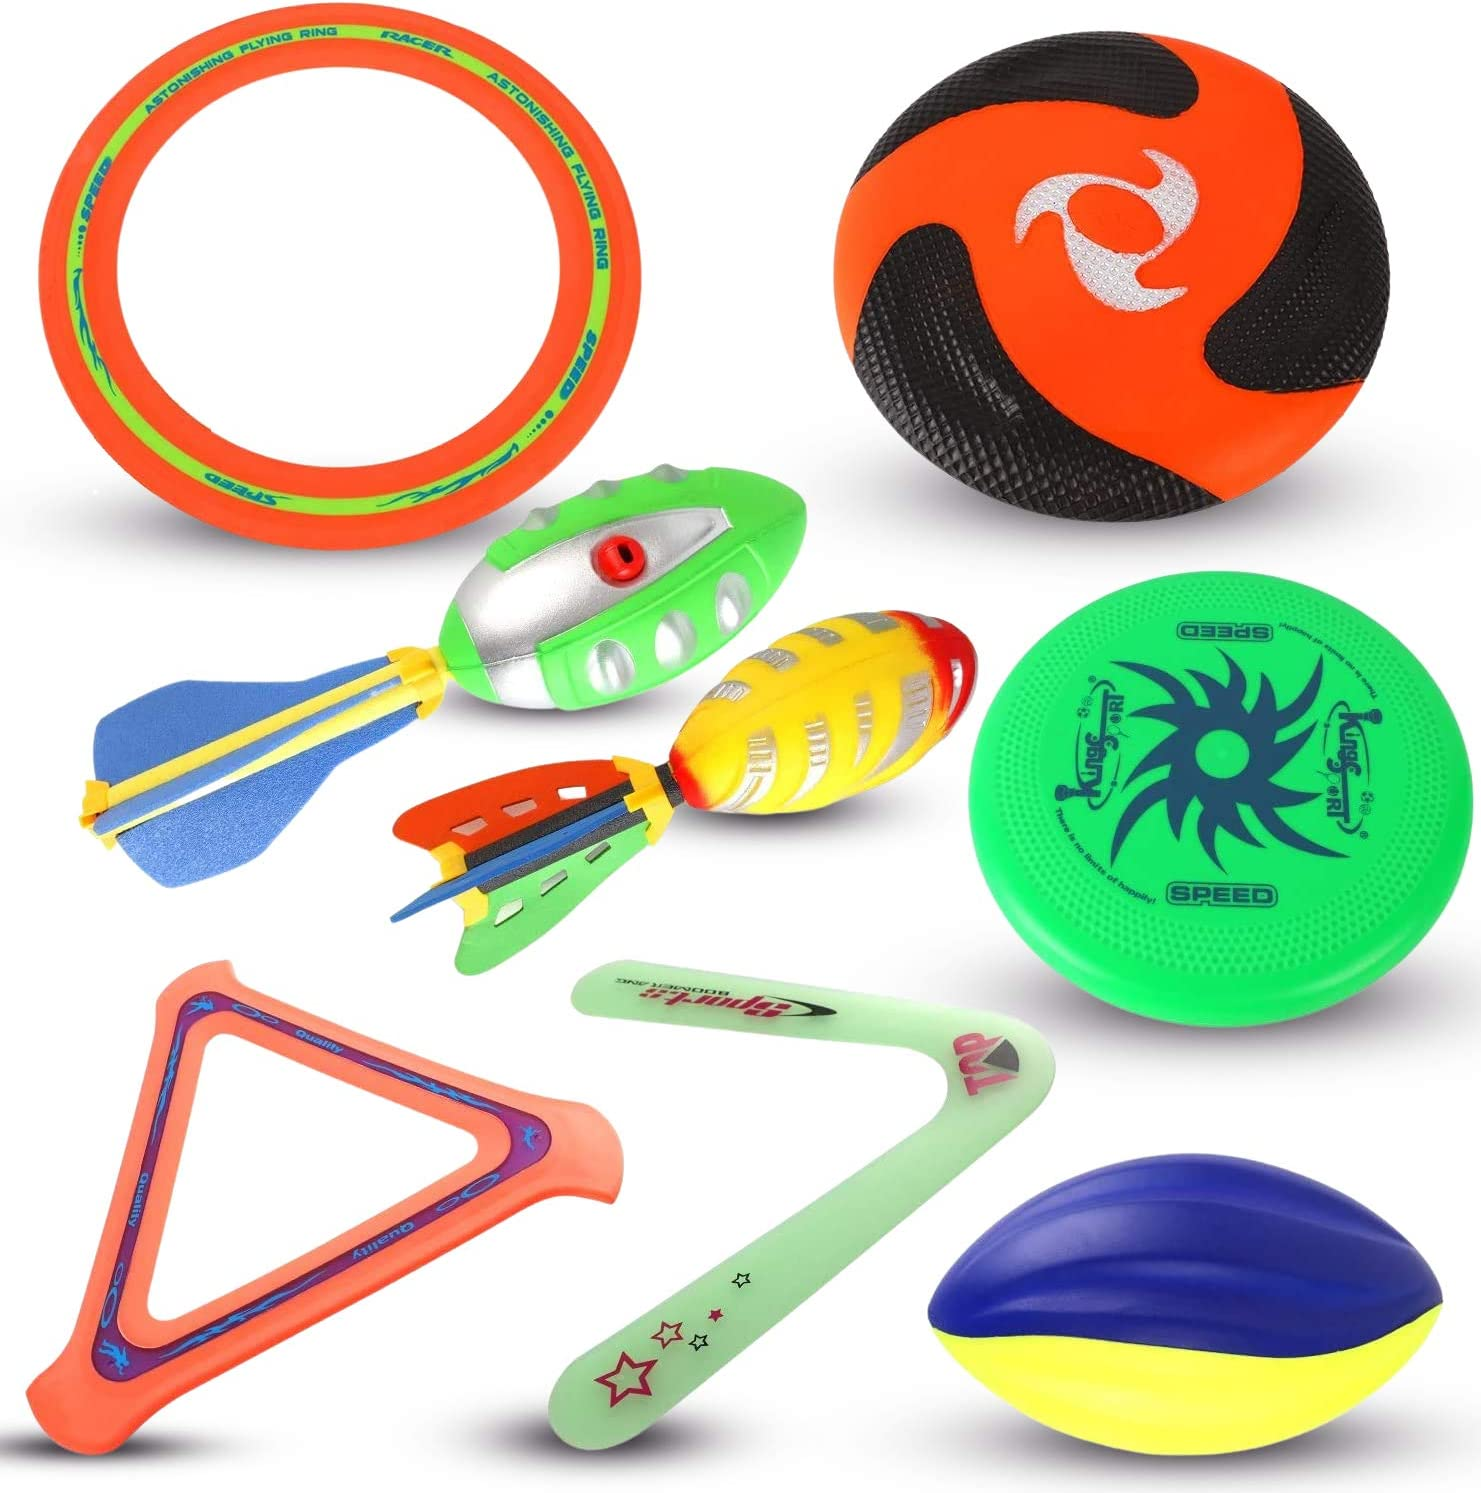 Liberty Imports 8 in 1 Ultimate Outdoor Sports Combo Play Set   Foam Football, Plastic Flying Discs, Aero Rings, Boomerang and Whistling Football   Backyard Toys and Summer Activities for Kids